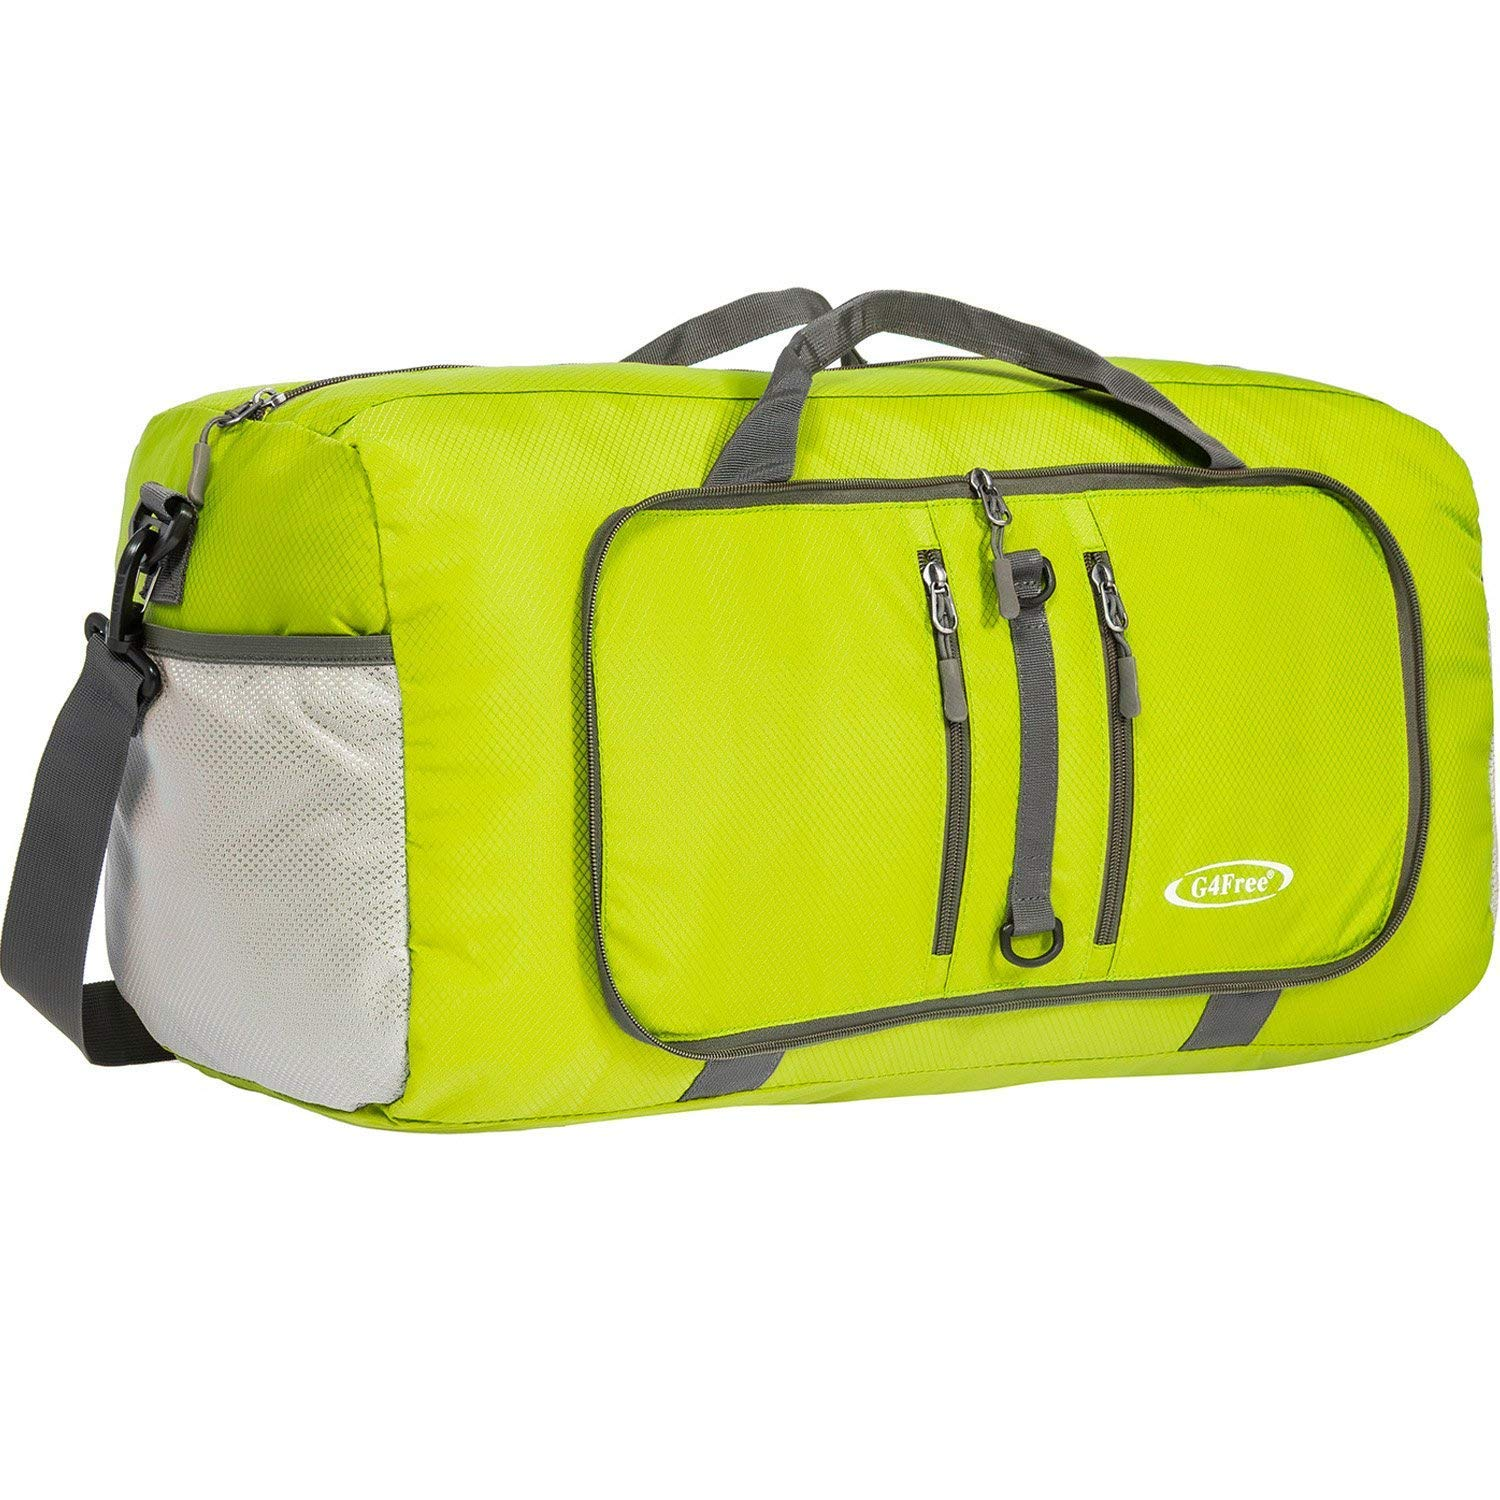 ab033062b Foldable Travel Luggage Duffle Bag Lightweight | The Shred Centre